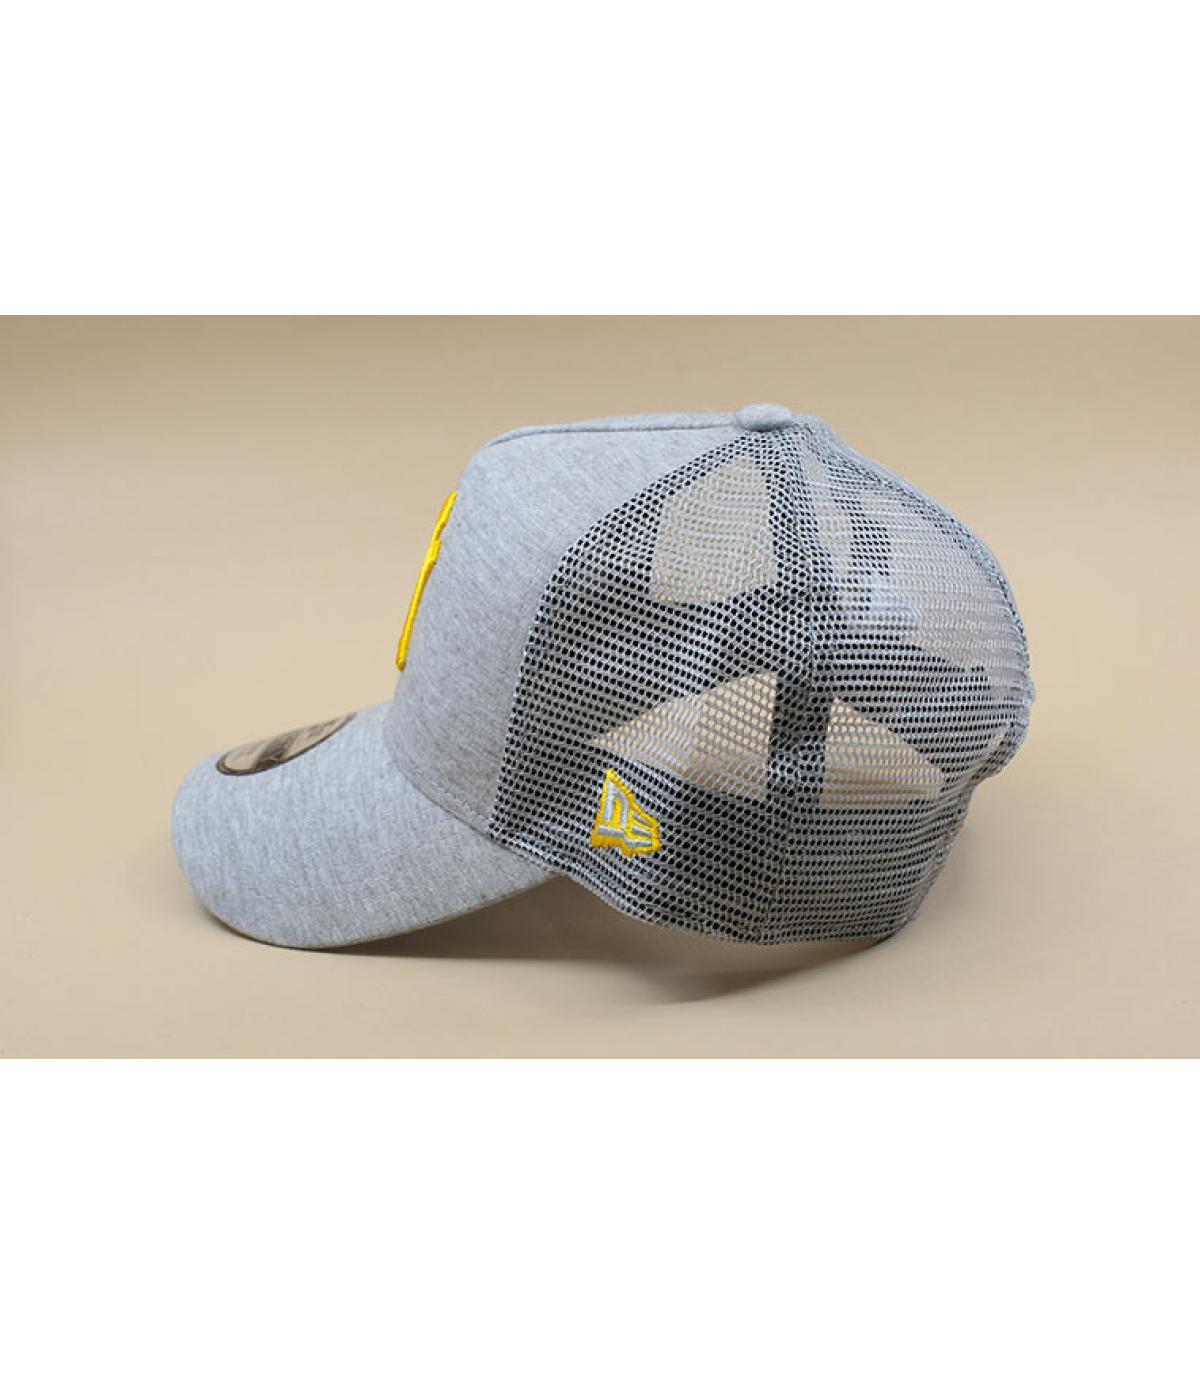 Détails Trucker Kids Jersey Ess NY grey mellow yellow - image 4